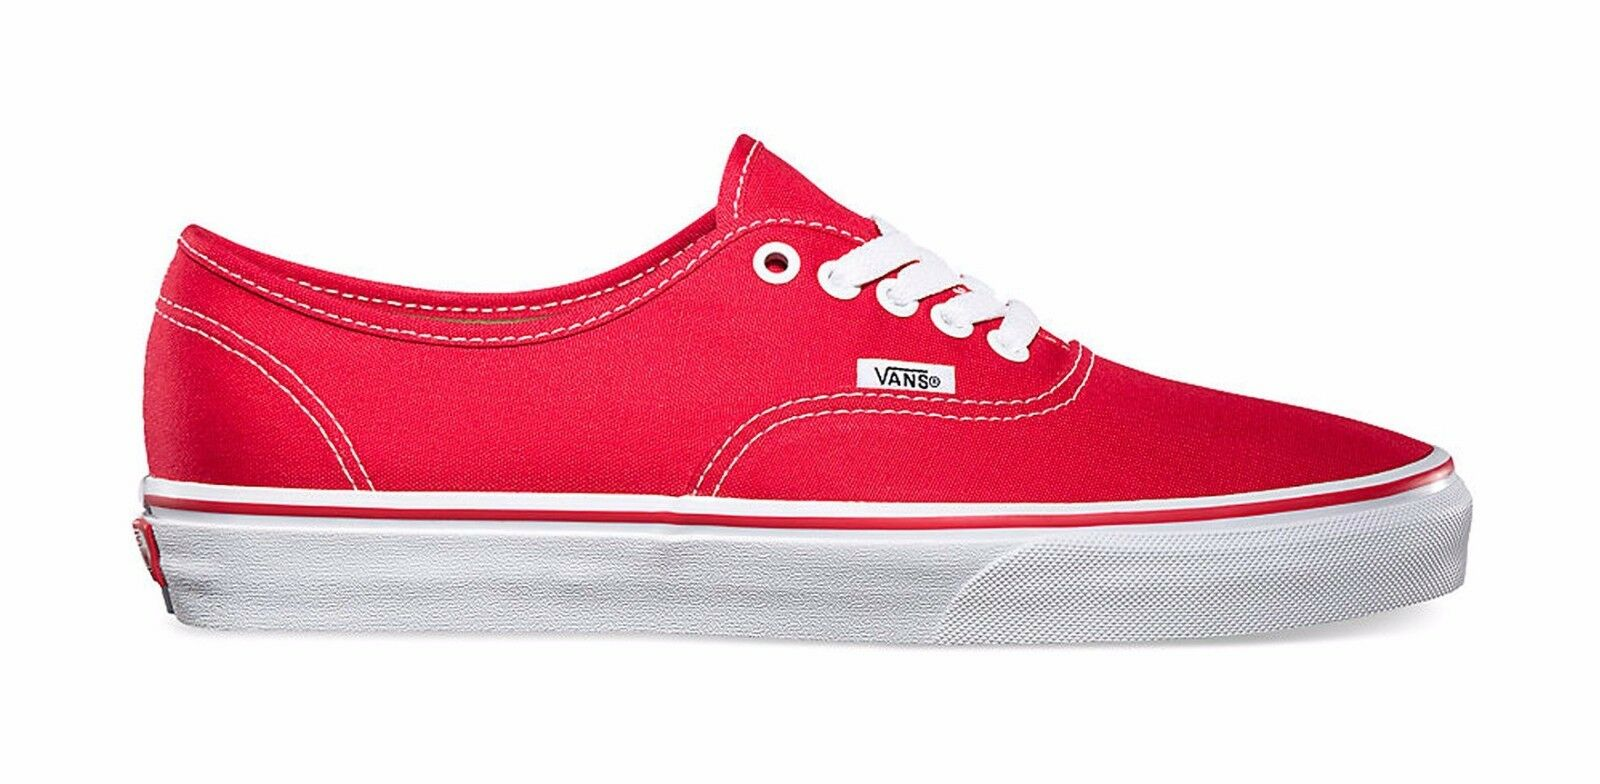 Vans Authentic Canvas shoes Men Size Sneakers VN-0EE3RED - Red White